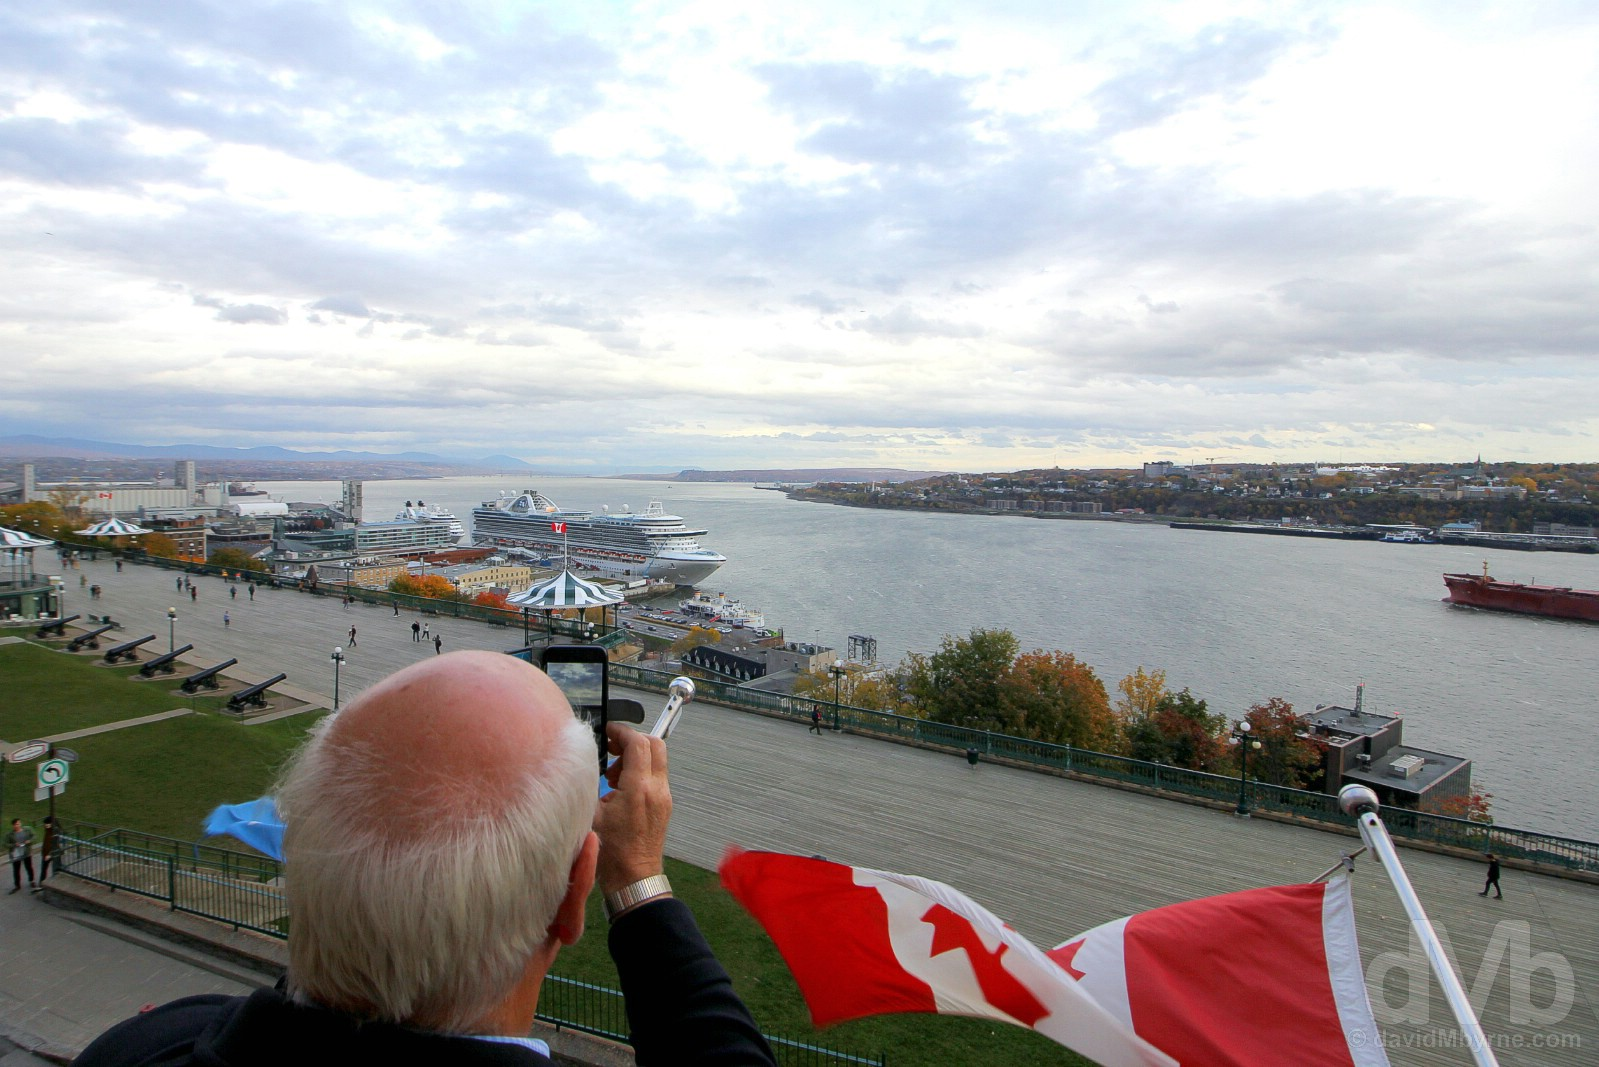 Photographing the St Lawrence River from the balcony of the Hotel Terrasse Dufferin, Quebec City, Quebec, Canada. October 24, 2017.